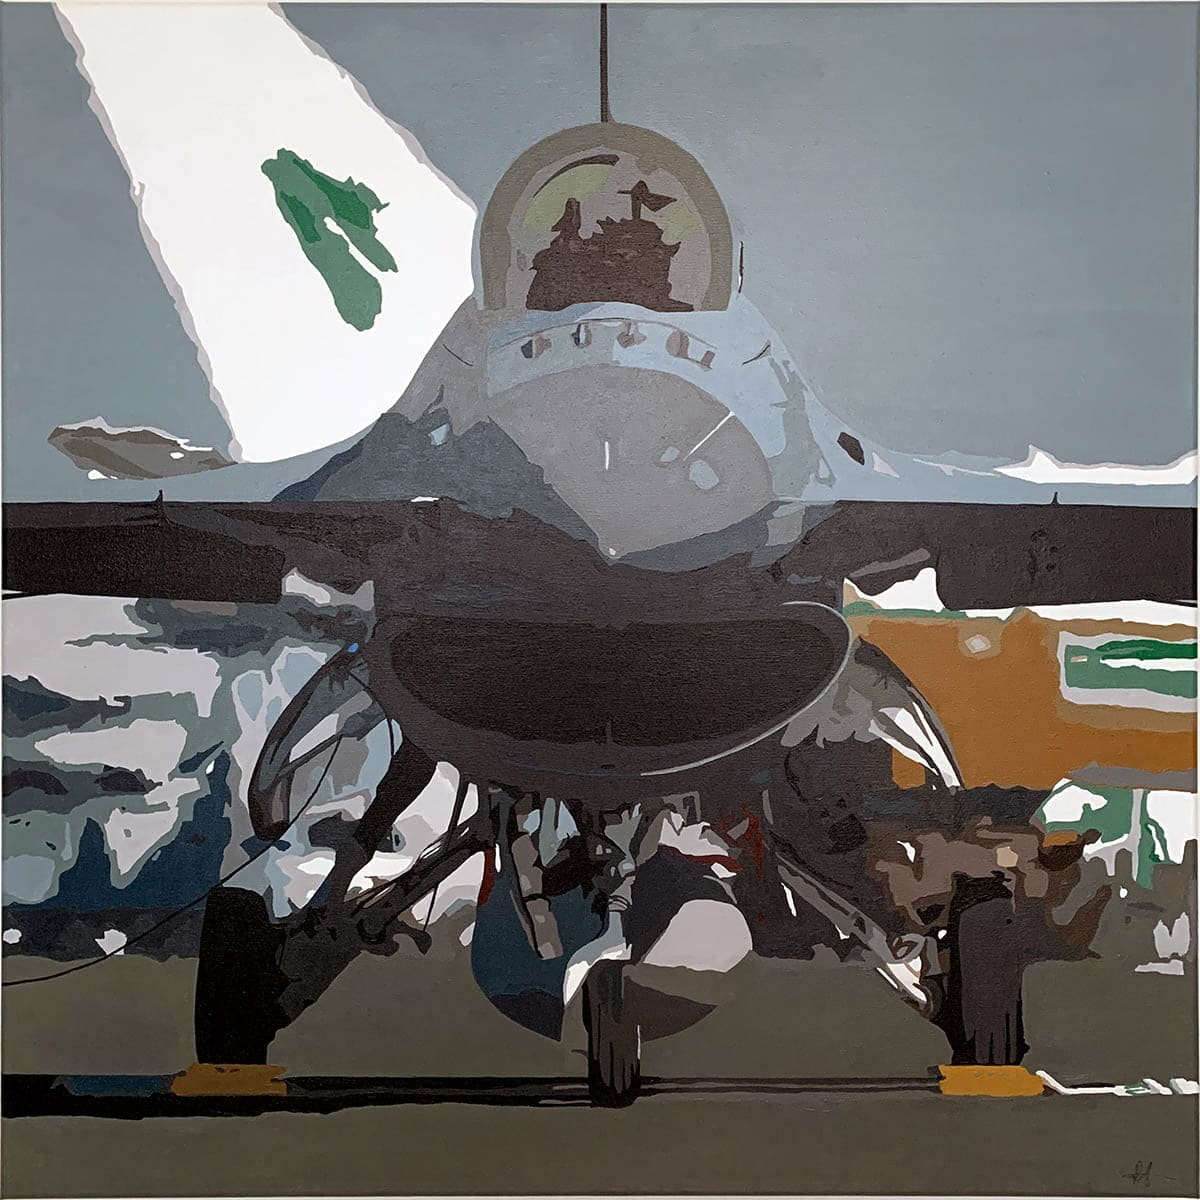 Painting of a Lockheed-Martin F-16, acrylic on canvas for sale.